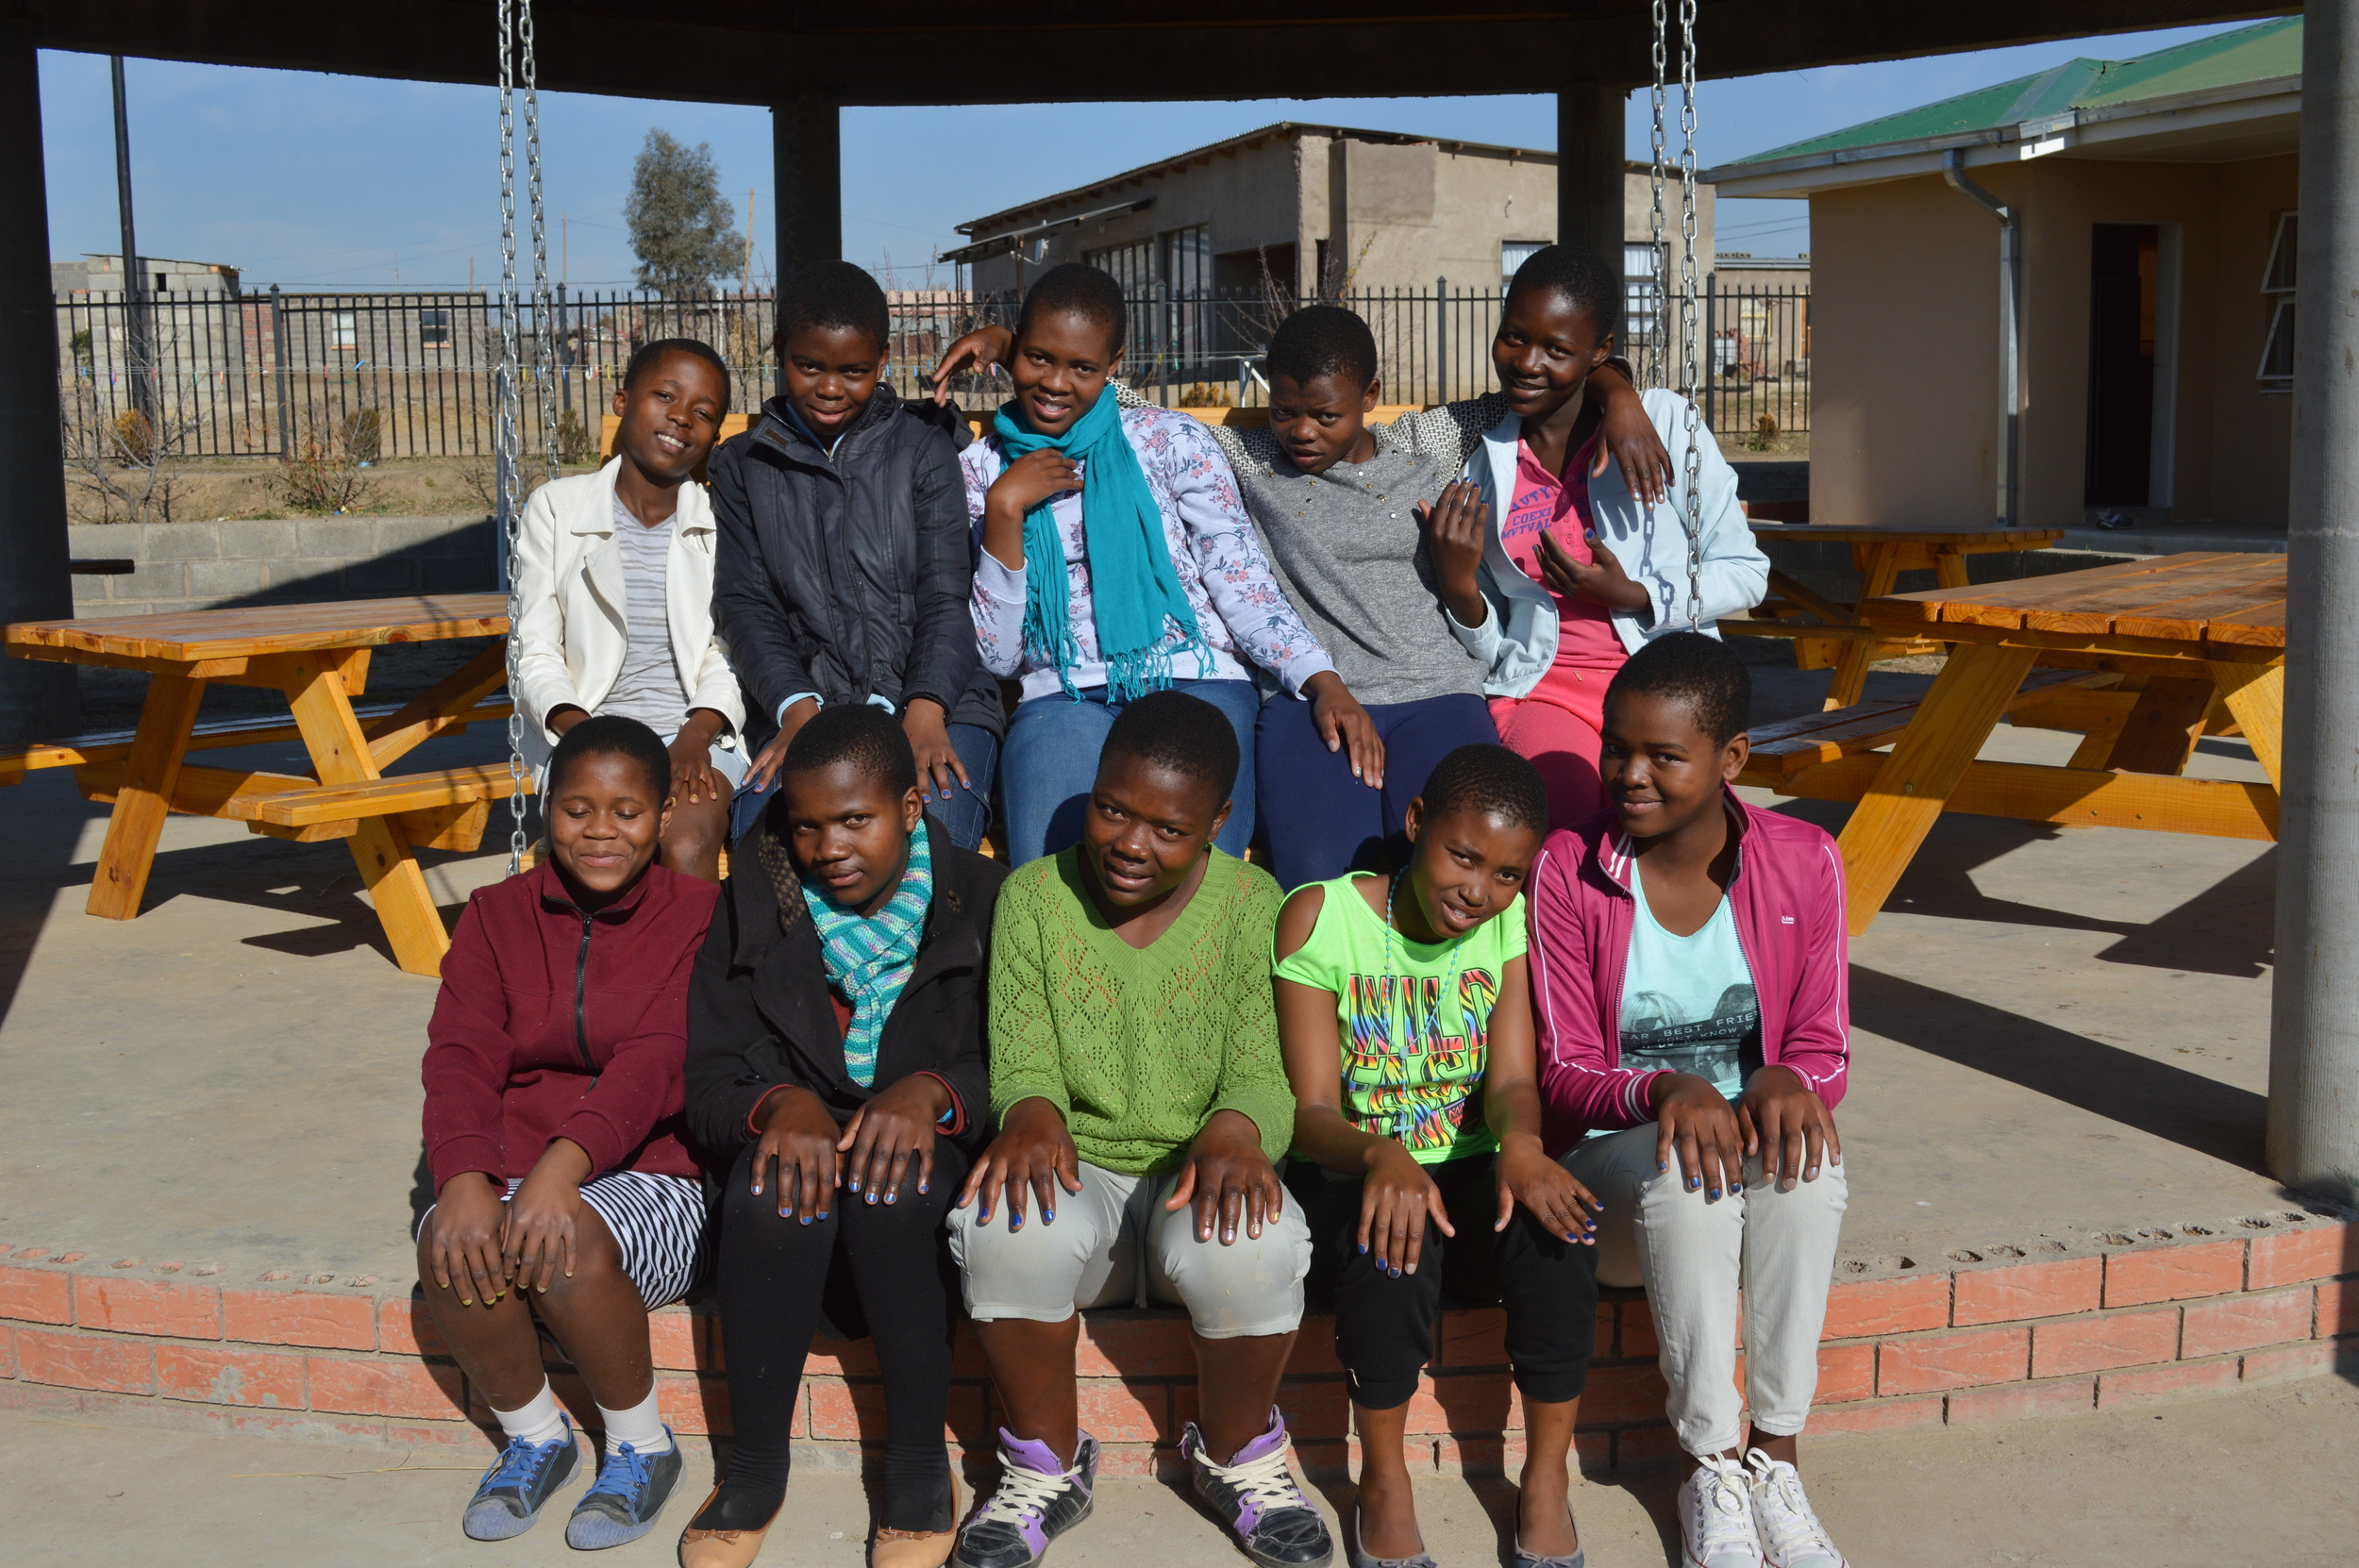 Here are some of the girls who participated in Cherish Week